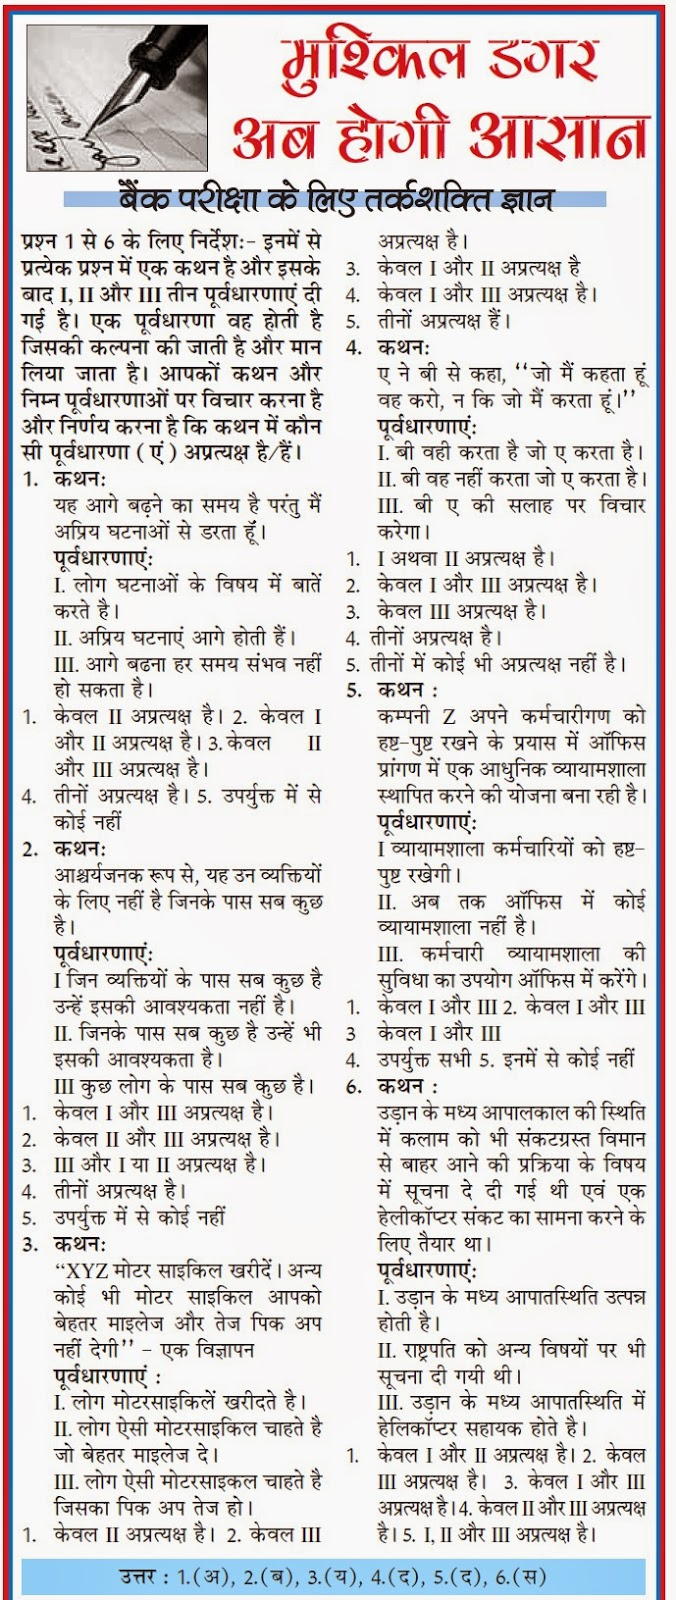 general knowledge for bank po exam 2014 2015 bank po gk questions 1. Black Bedroom Furniture Sets. Home Design Ideas